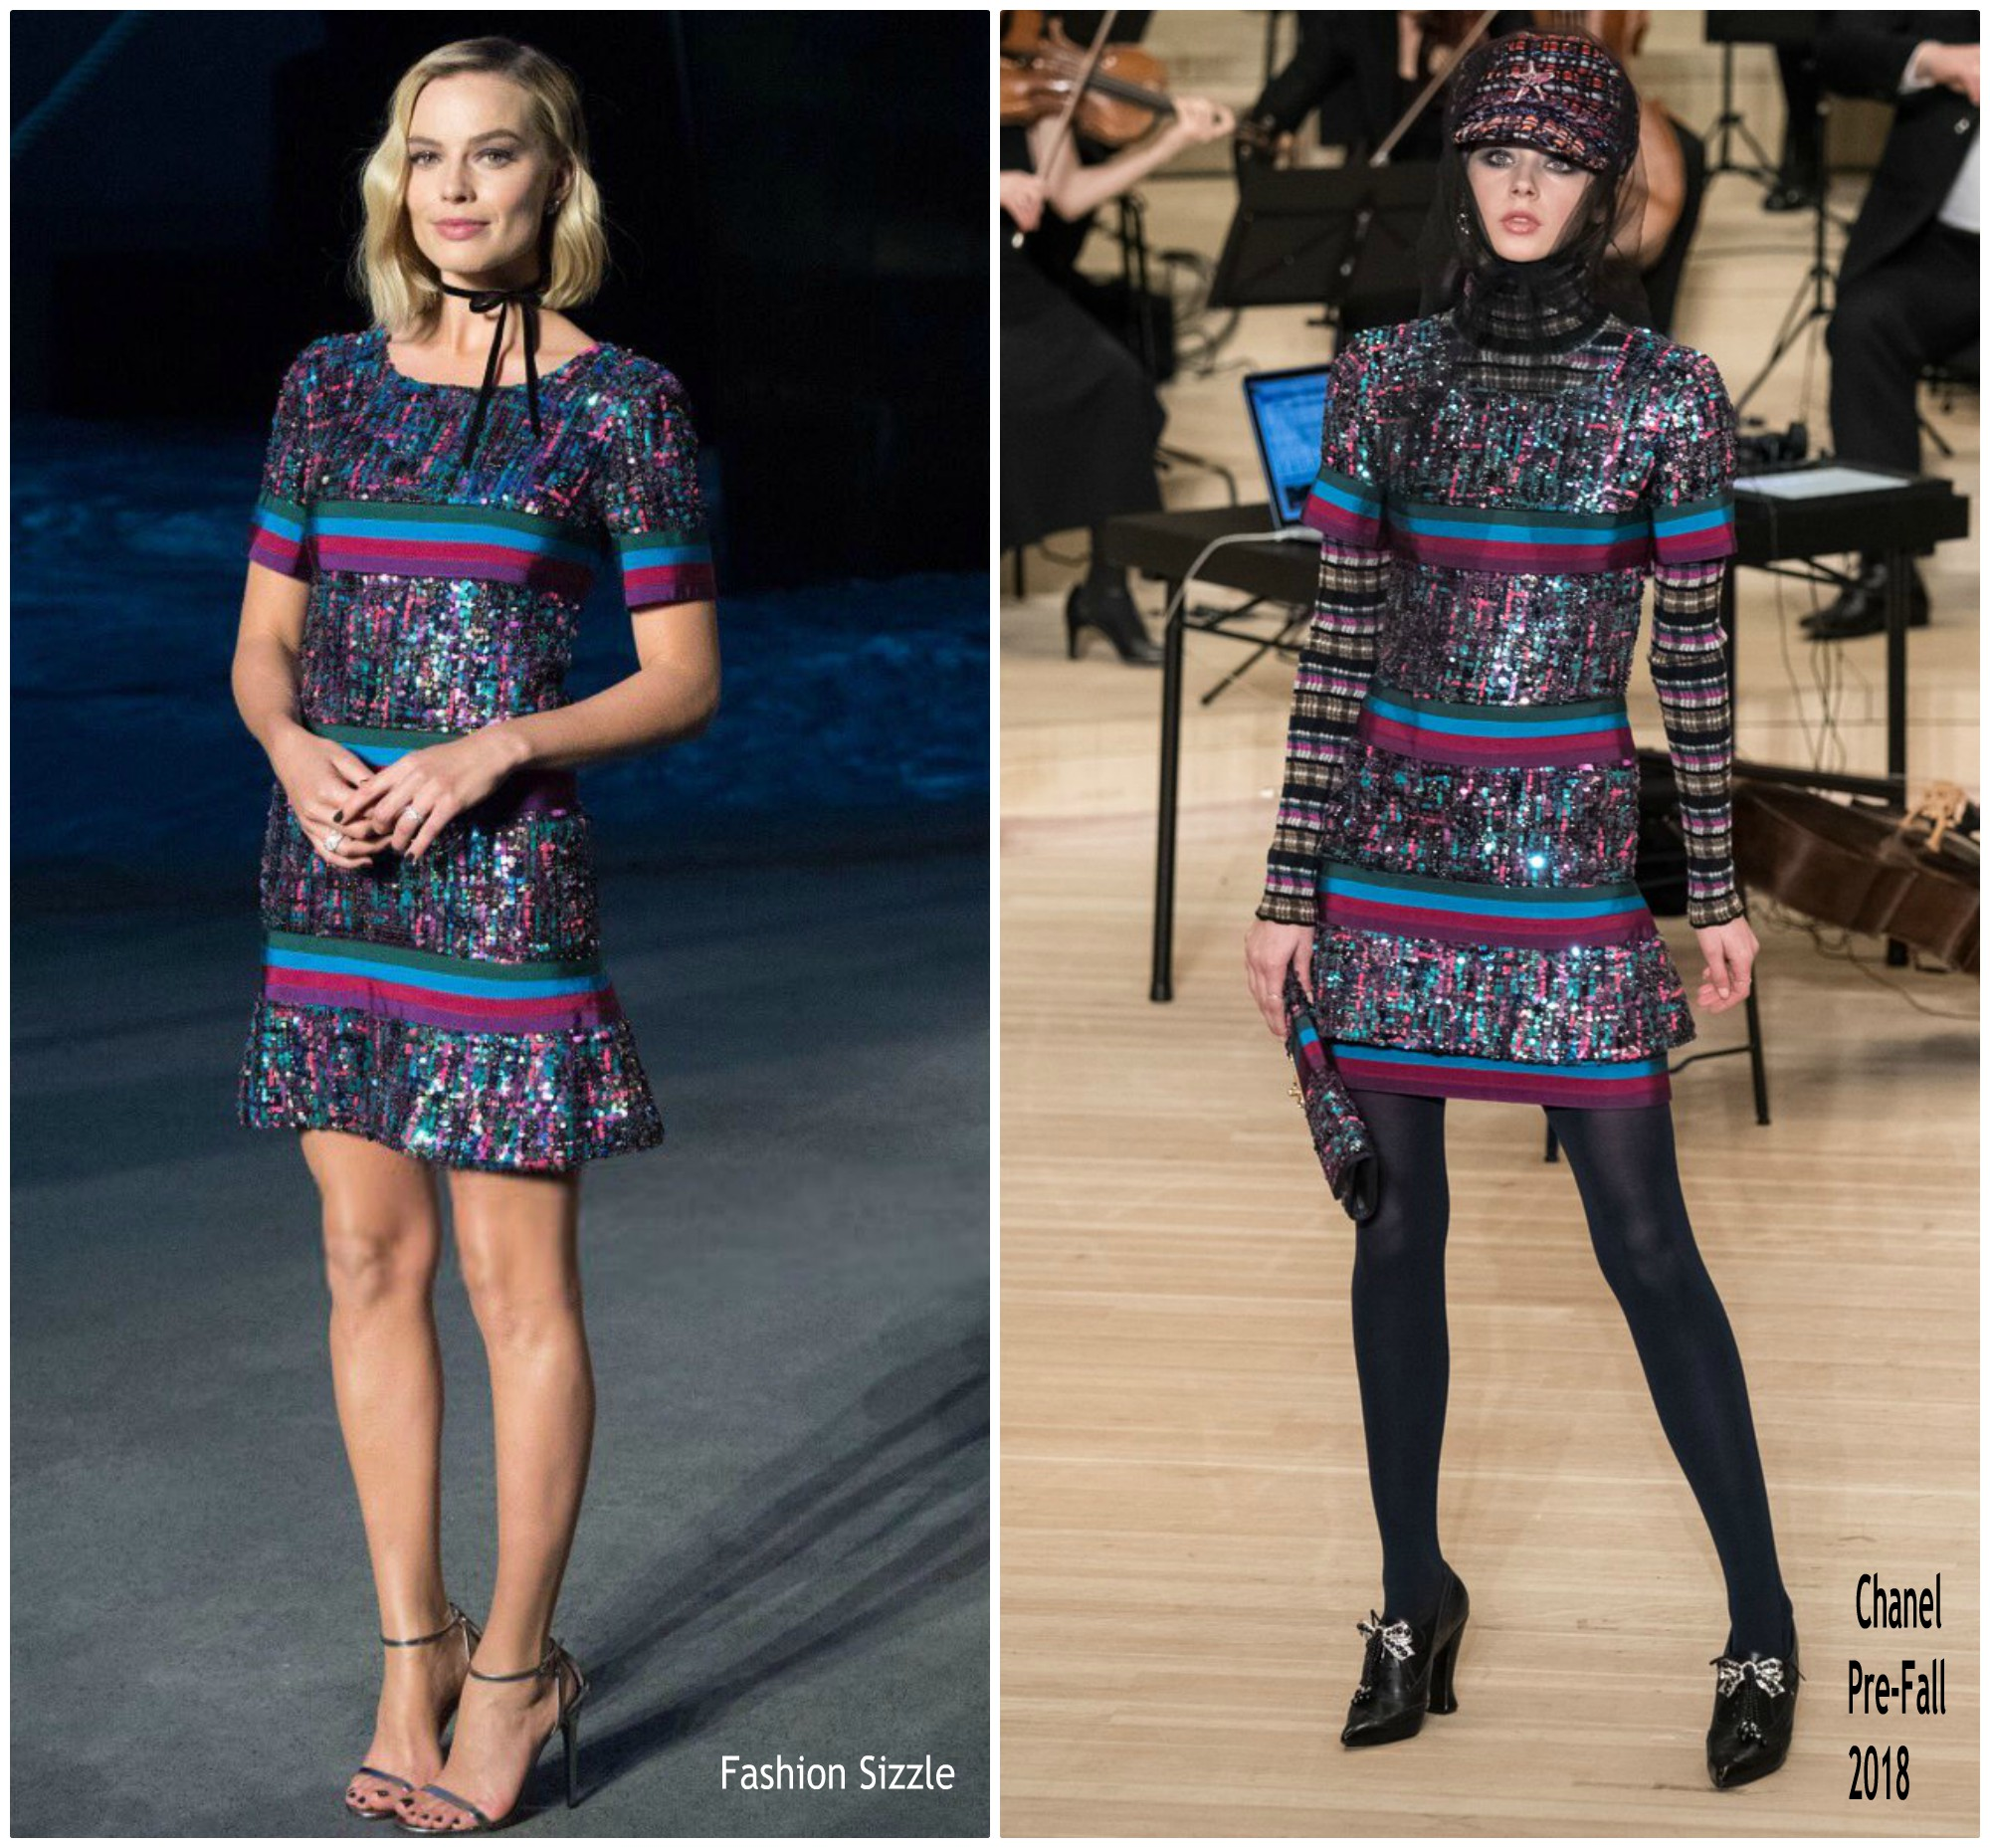 margot-robbie-in-chanel-chanel-resort-2019-fashionshow-in-paris